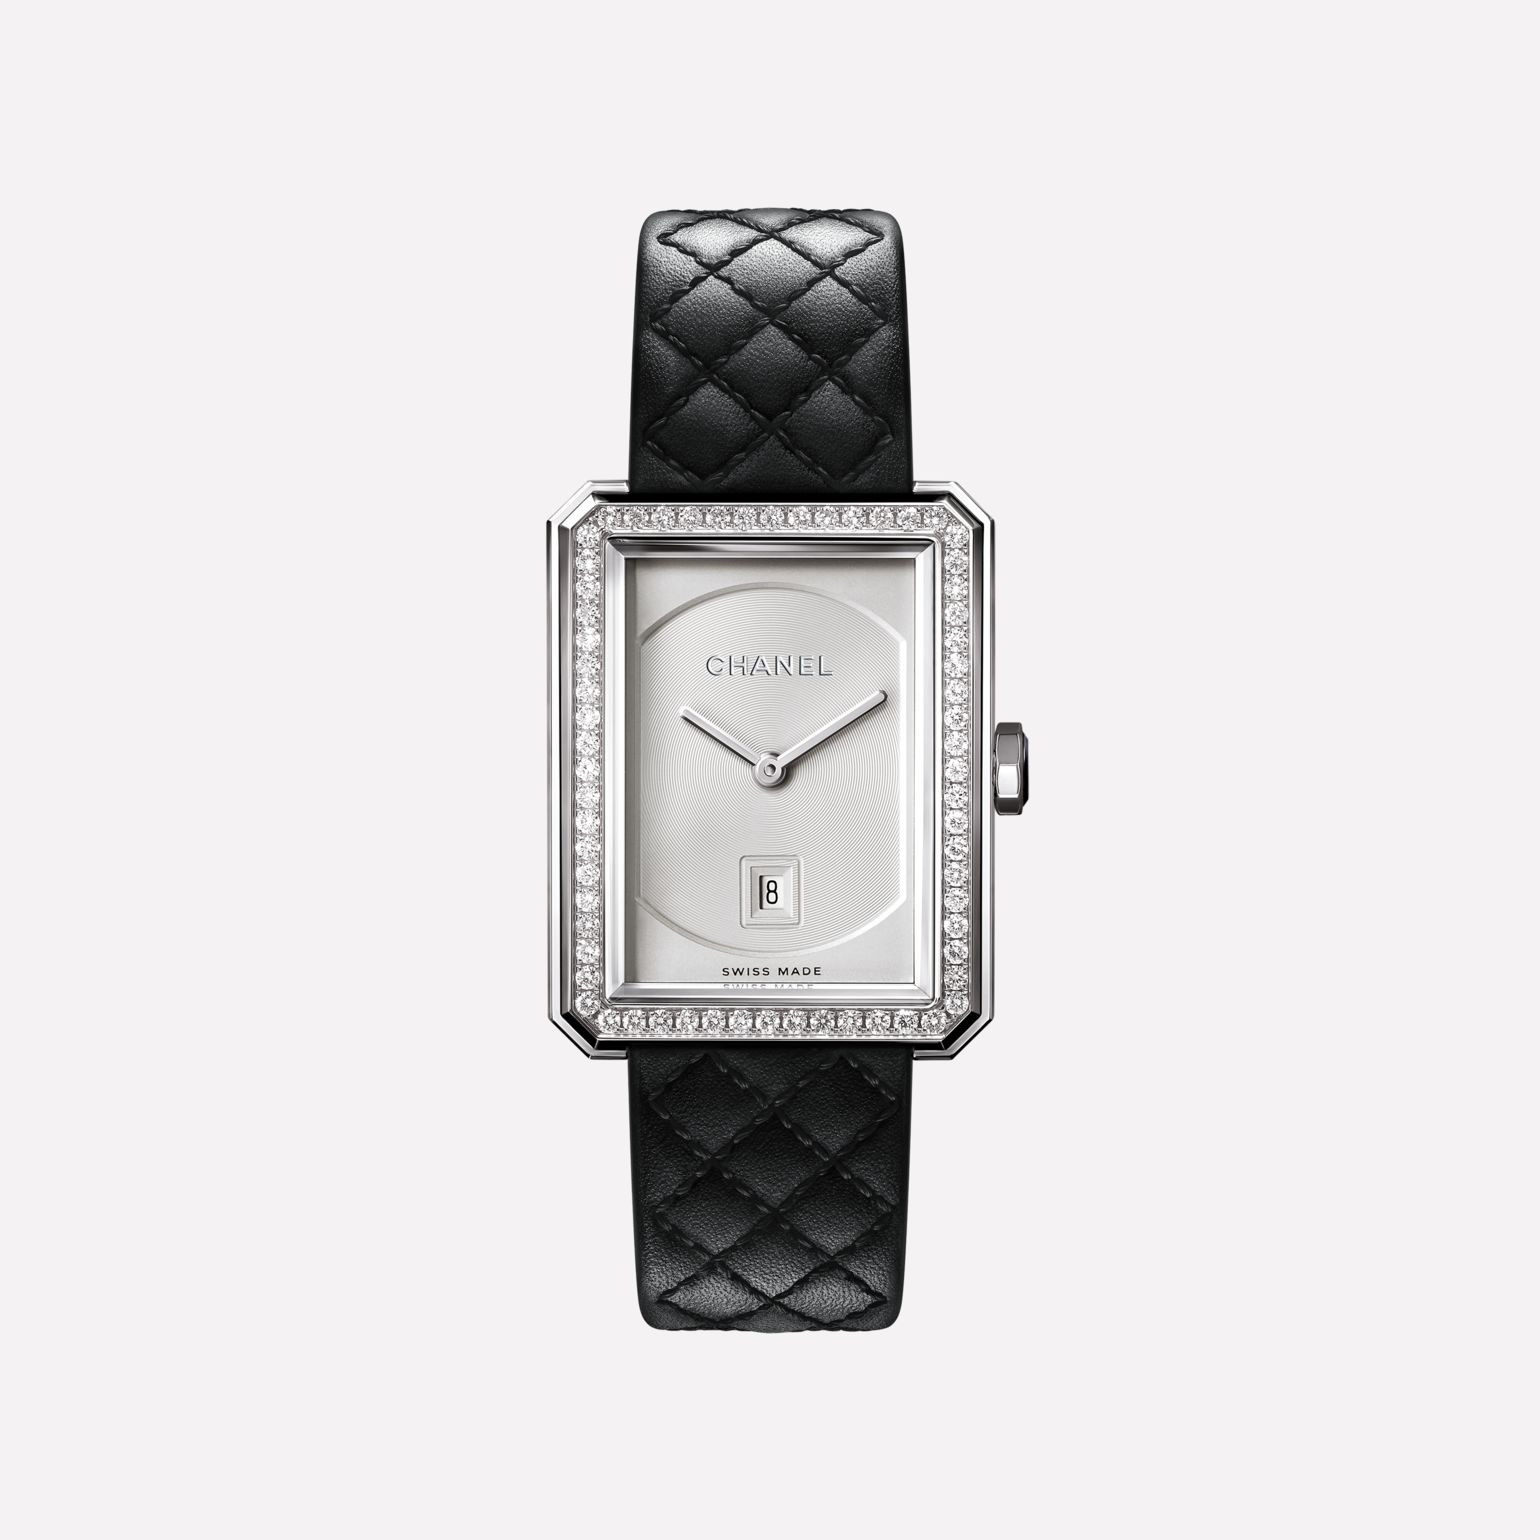 BOY·FRIEND Watch Medium version, white gold and diamonds, quilted pattern calfskin strap